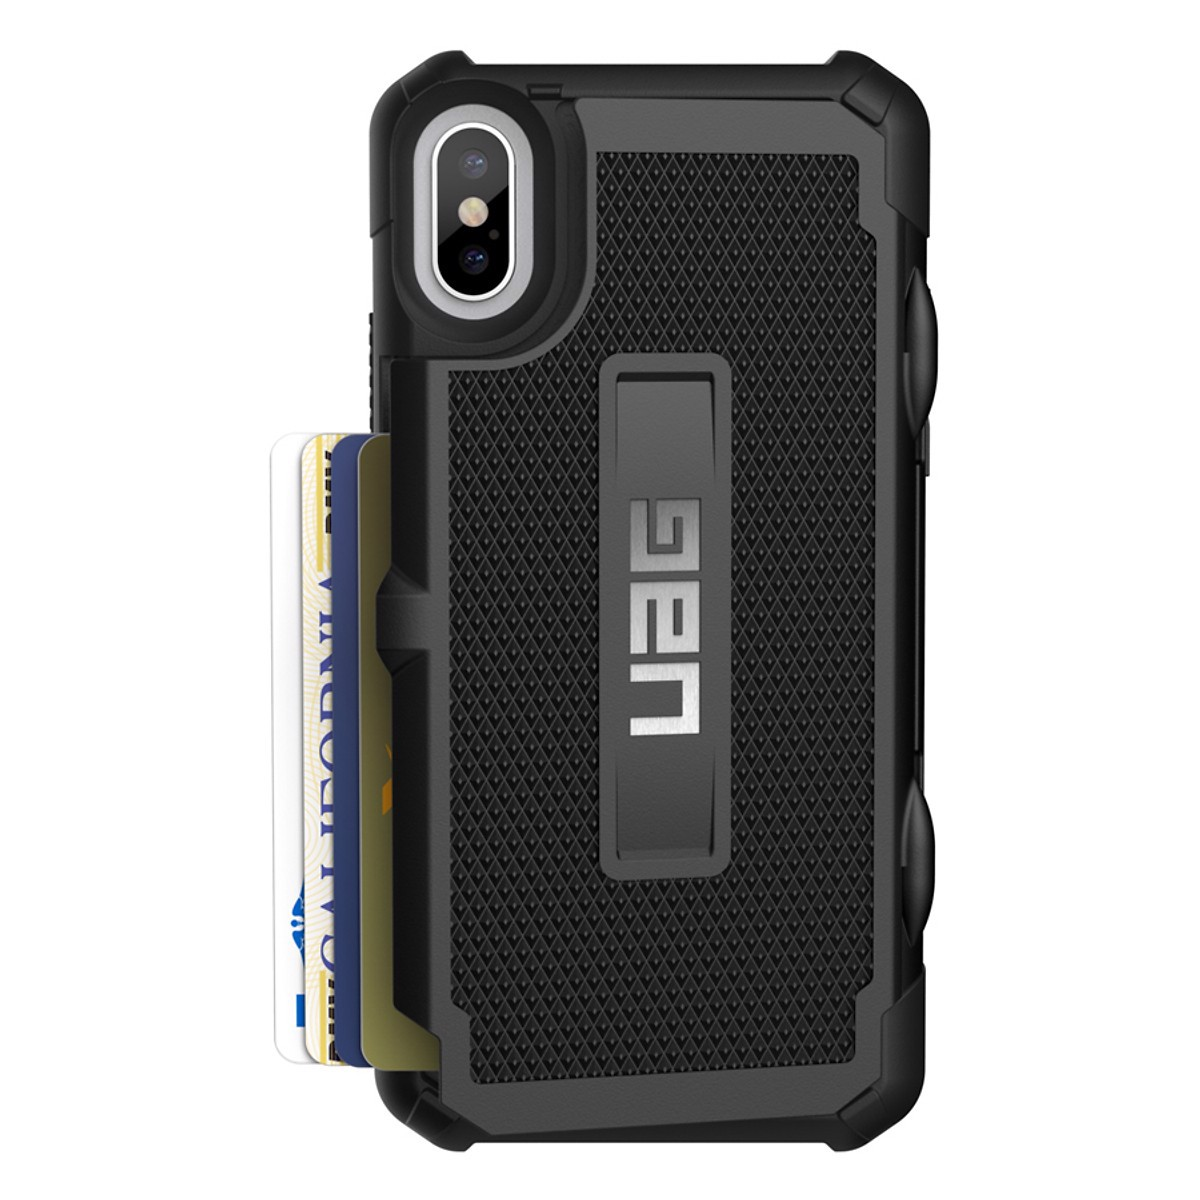 ỐP LƯNG IPHONE X UAG MONARCH 1 2.1